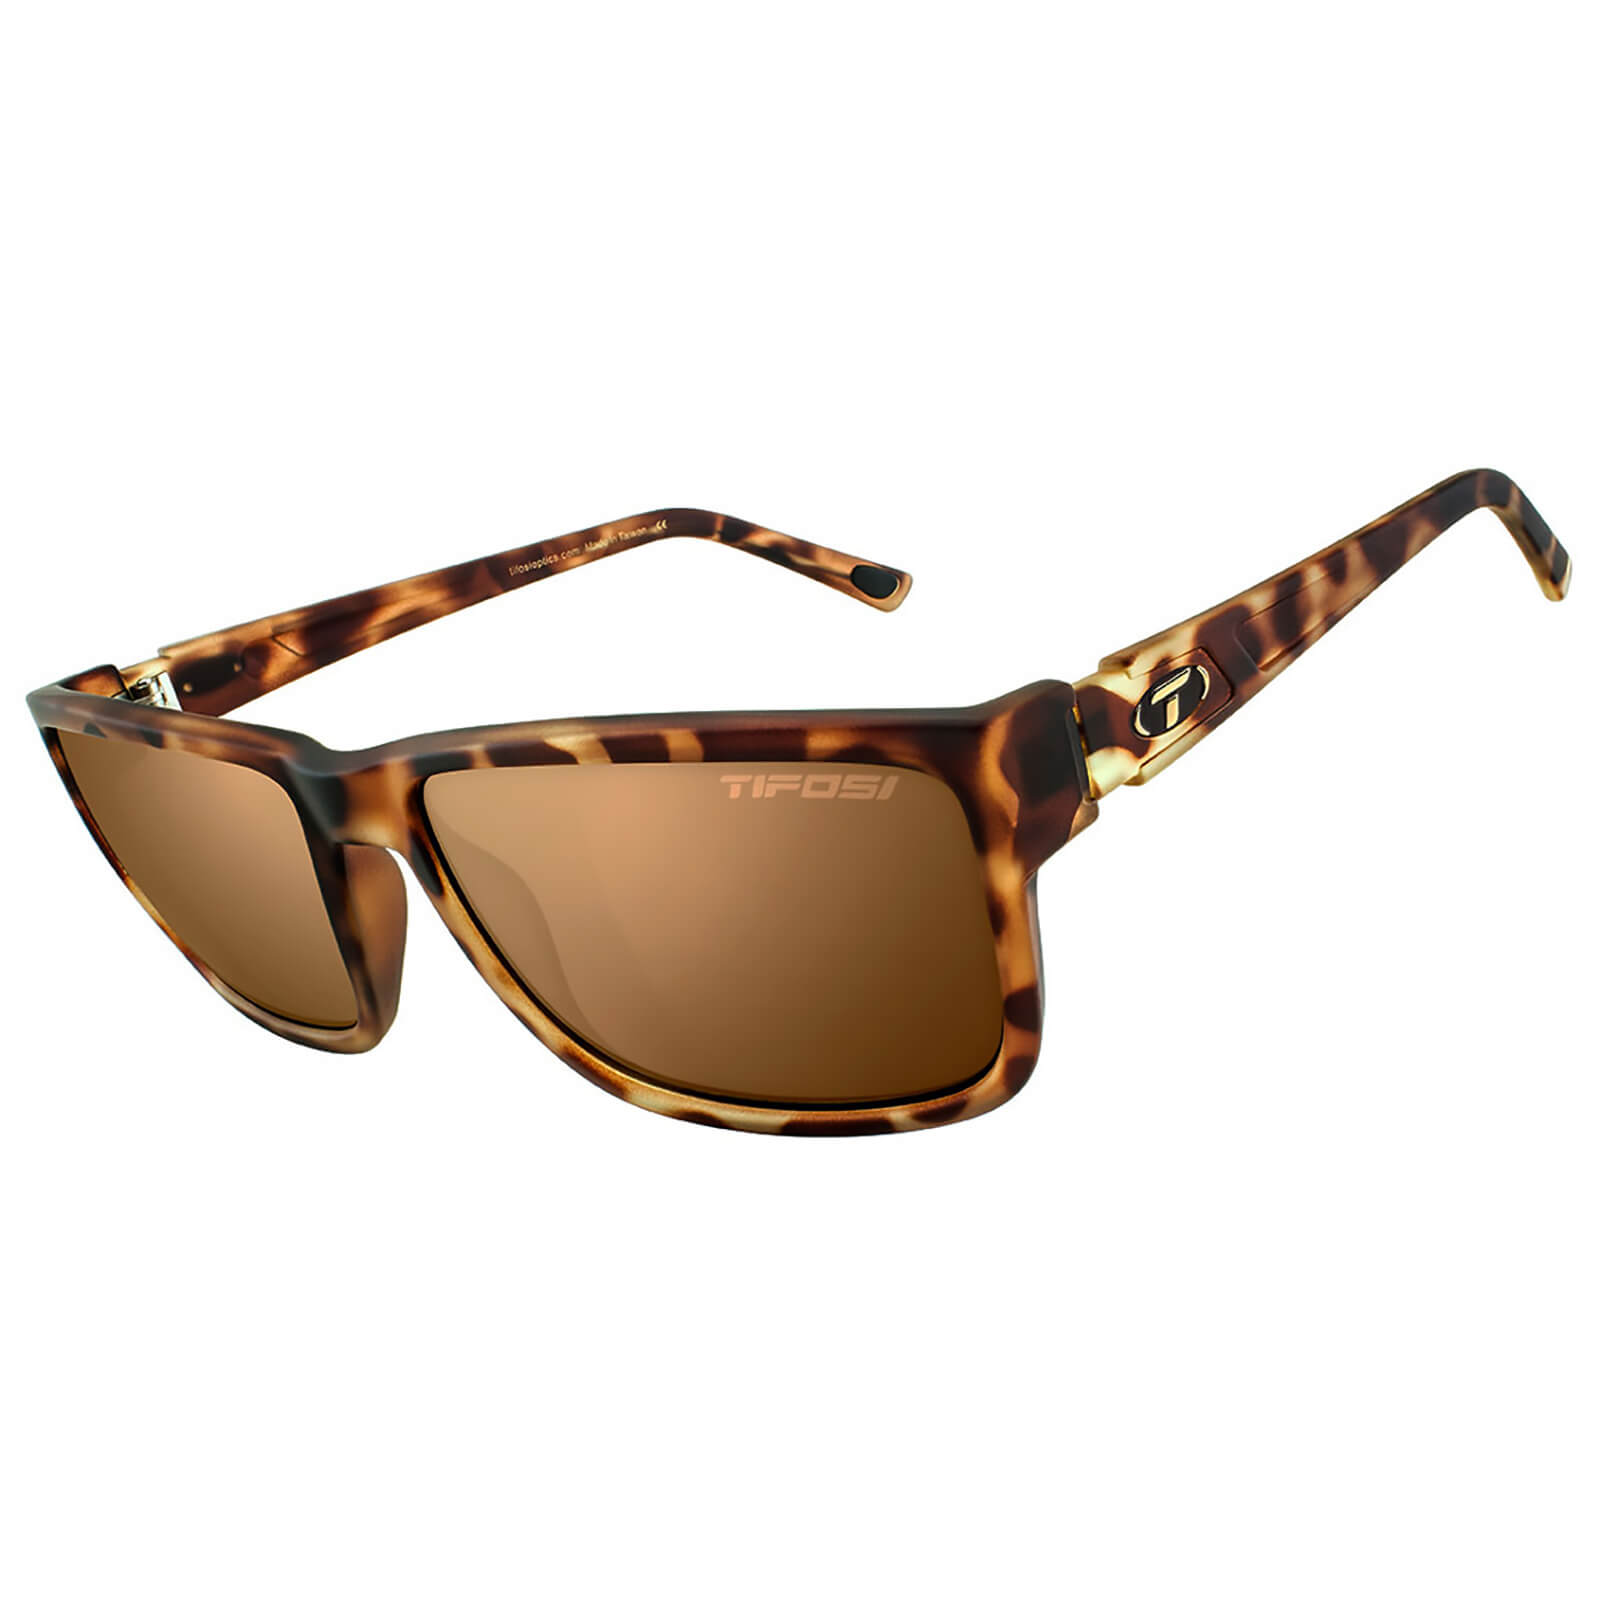 Tifosi Hagen XL Sunglasses - Matte Tortoise/Polarised Brown